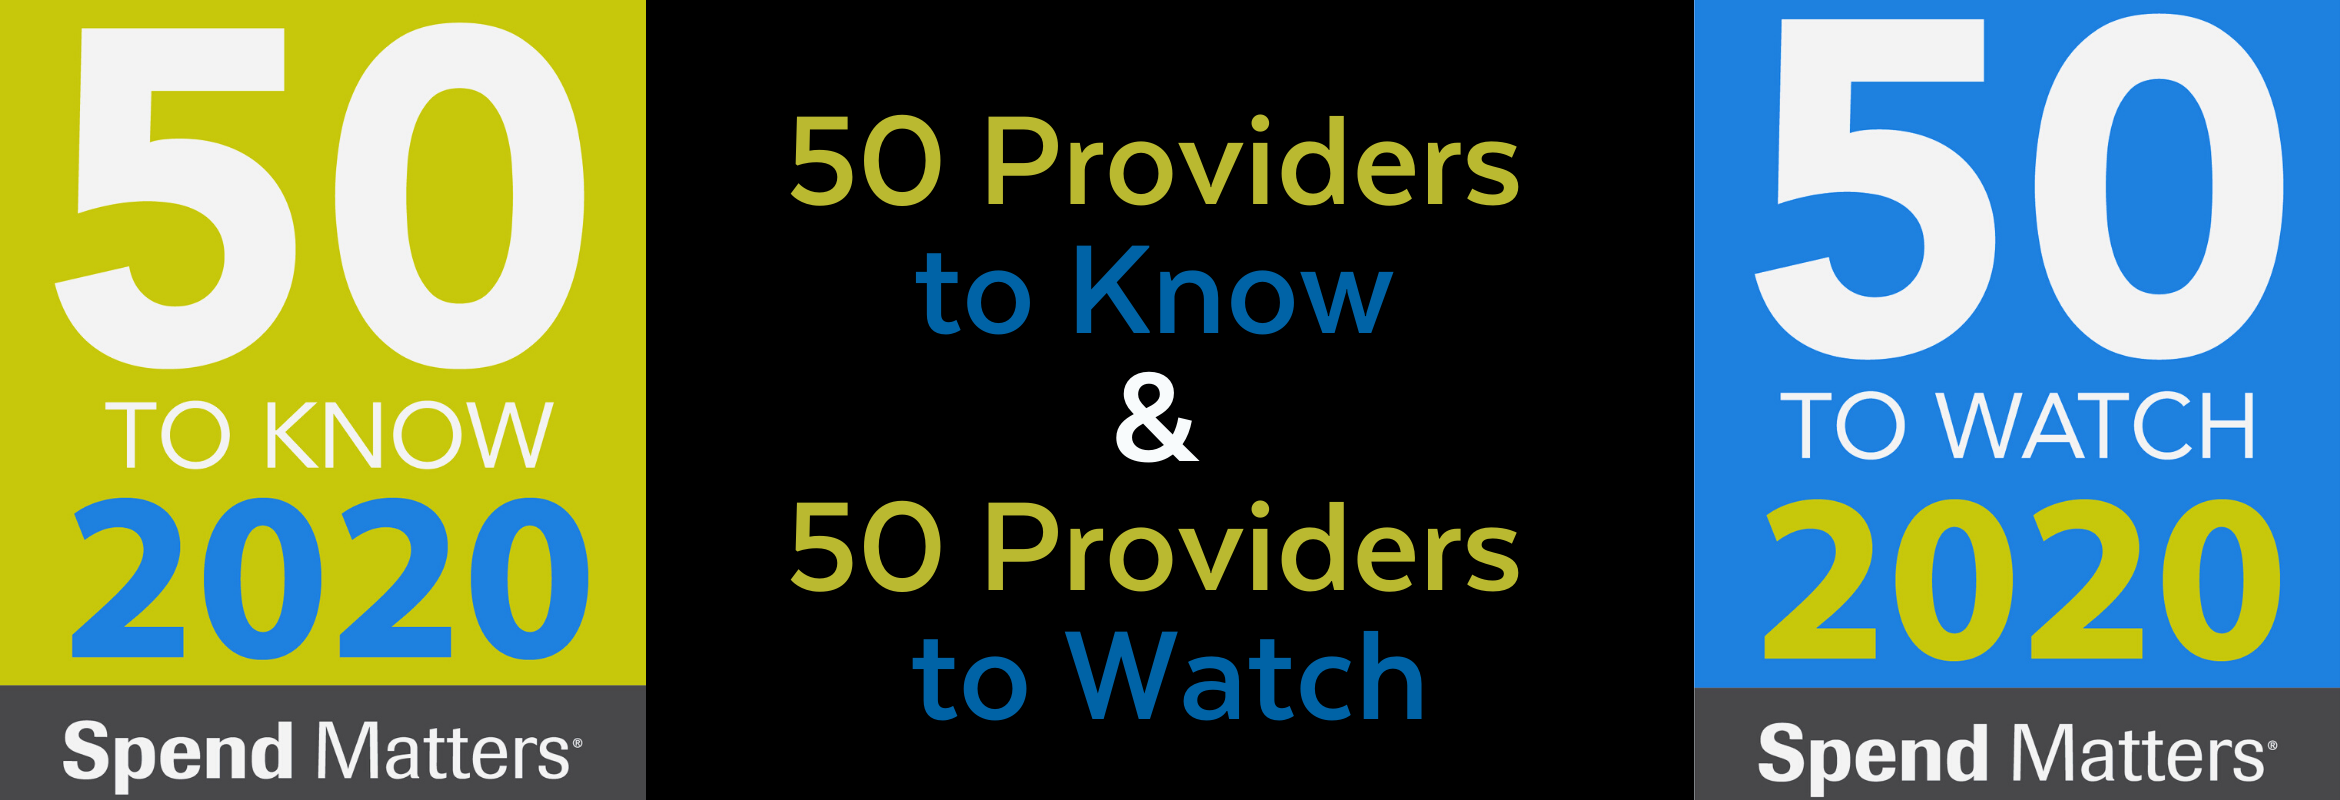 50 providers to know, 50 providers to watch